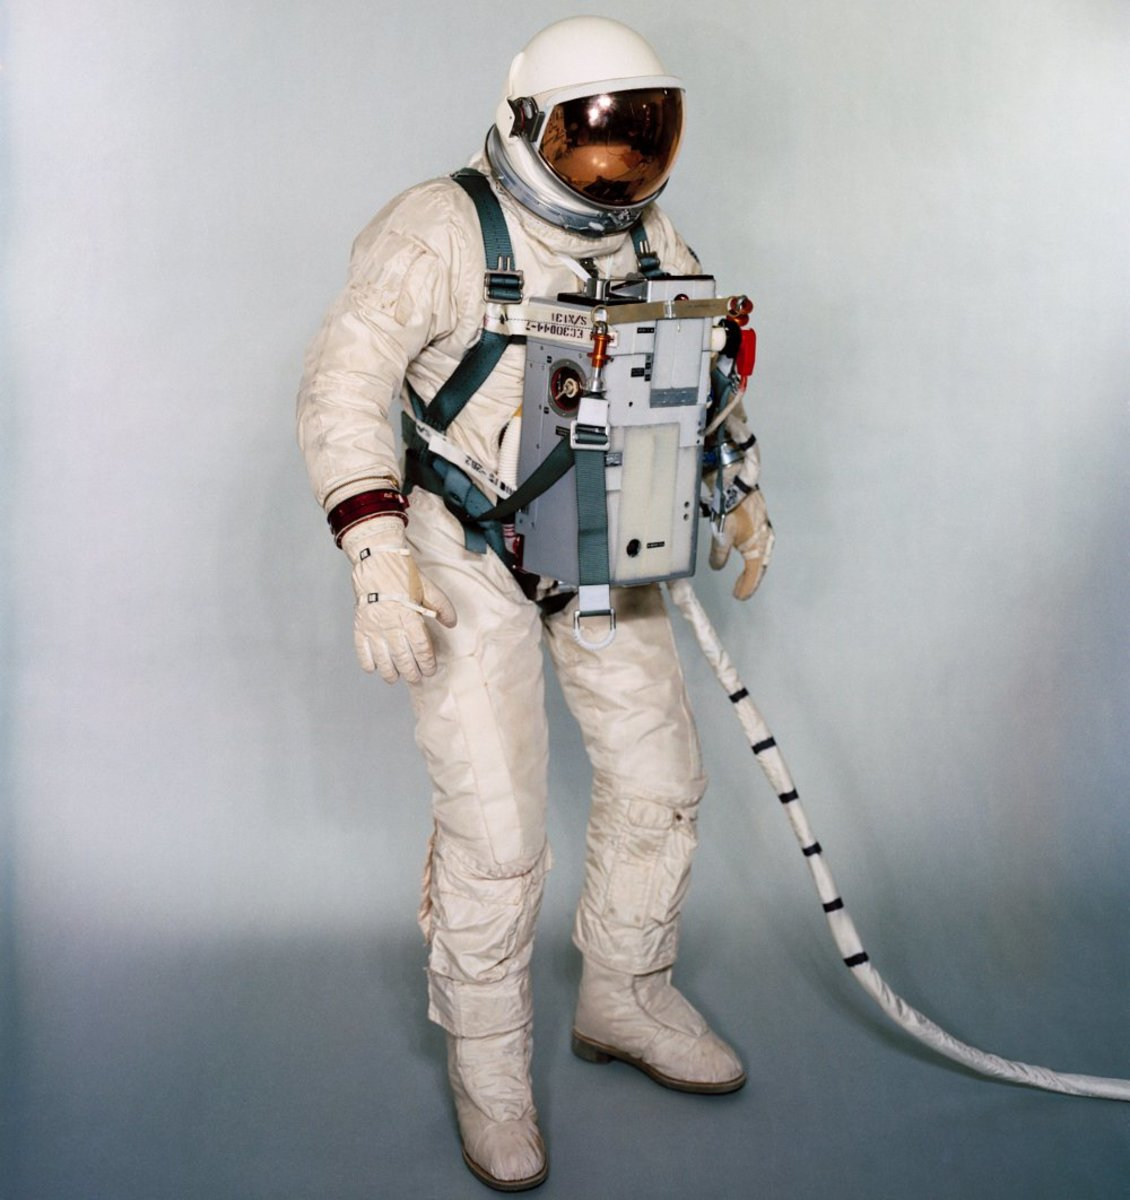 The chest-mounted Extravehicular Life Support System (ELSS). Photo courtesy of NASA.